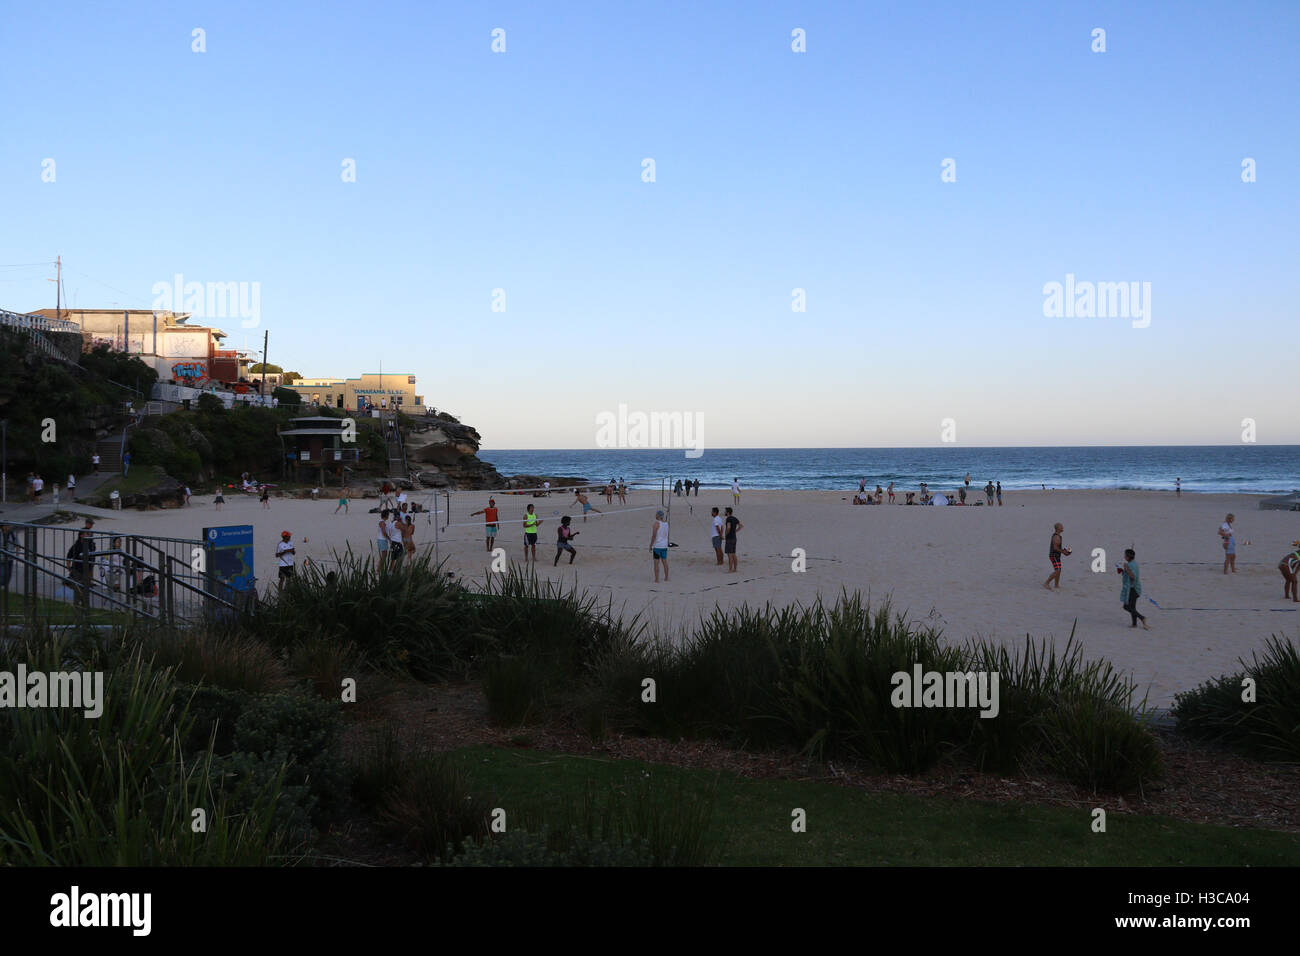 Tamarama Beach on the Bondi to Coogee coastal walk at dusk. Stock Photo